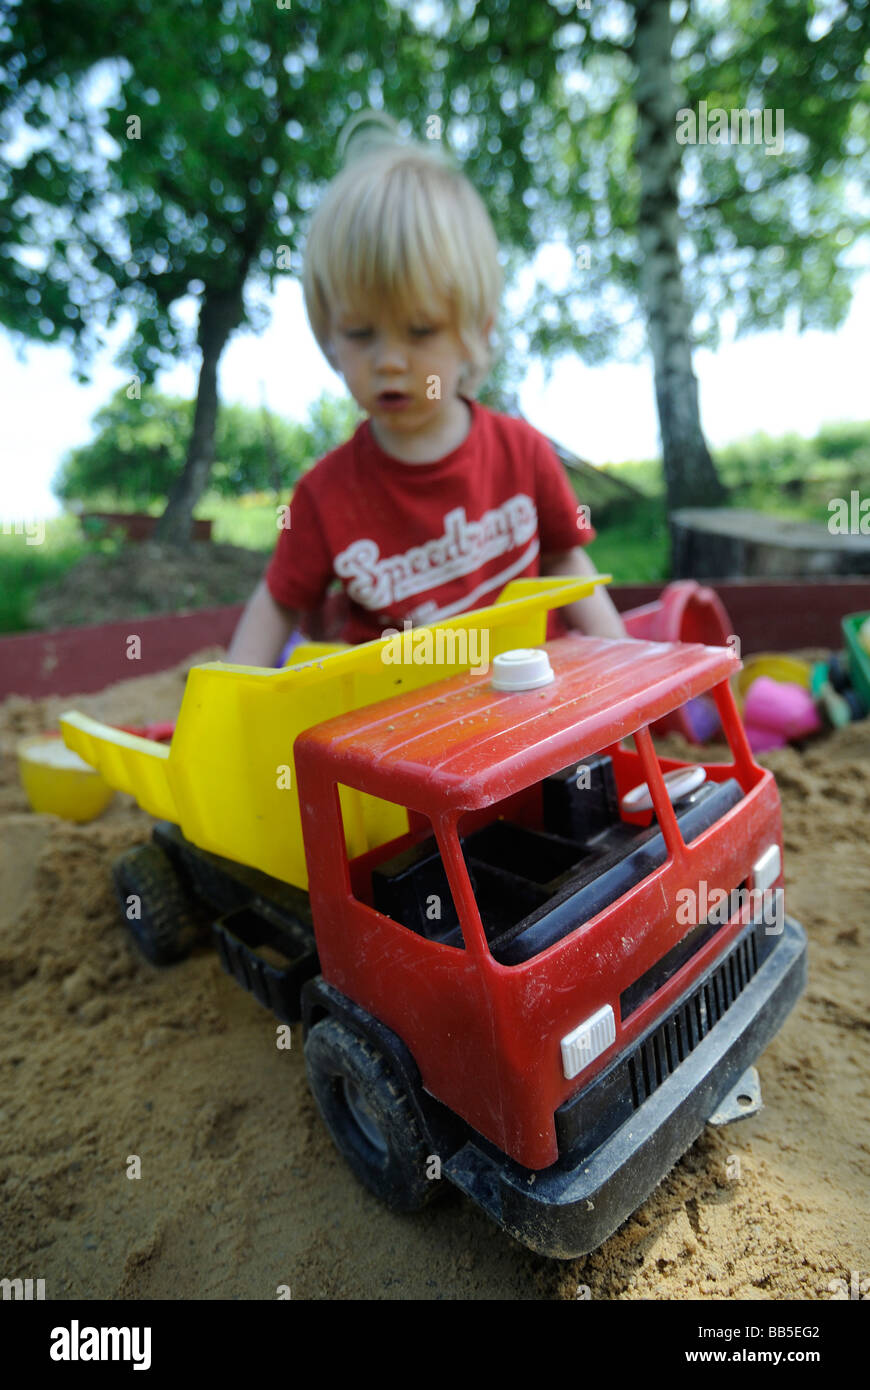 Baby Boy Boys In Sand Pit Playing Toys Car Cars Vehicle Playground 2